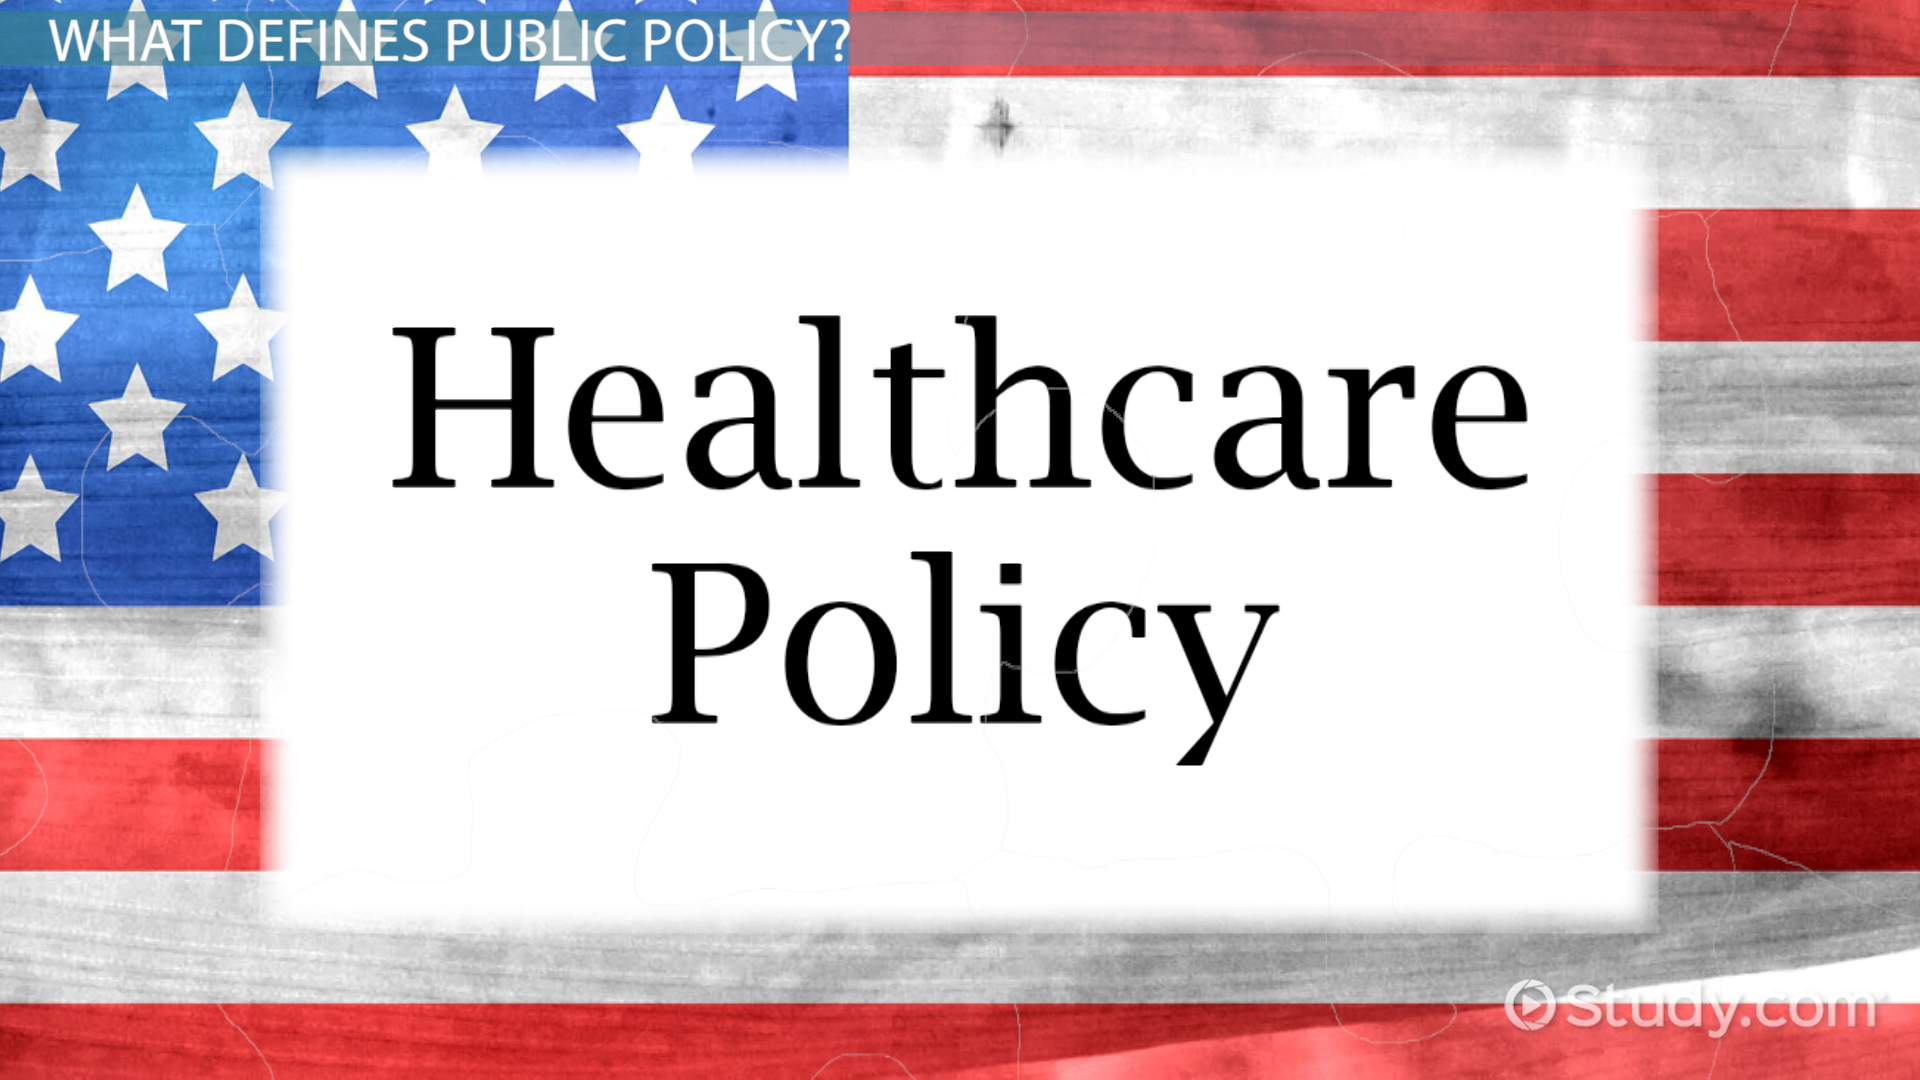 health policy analysis essay What is the definition of health policy analysis an analysis that provides informed advice to a client that relates to a public policy decision.